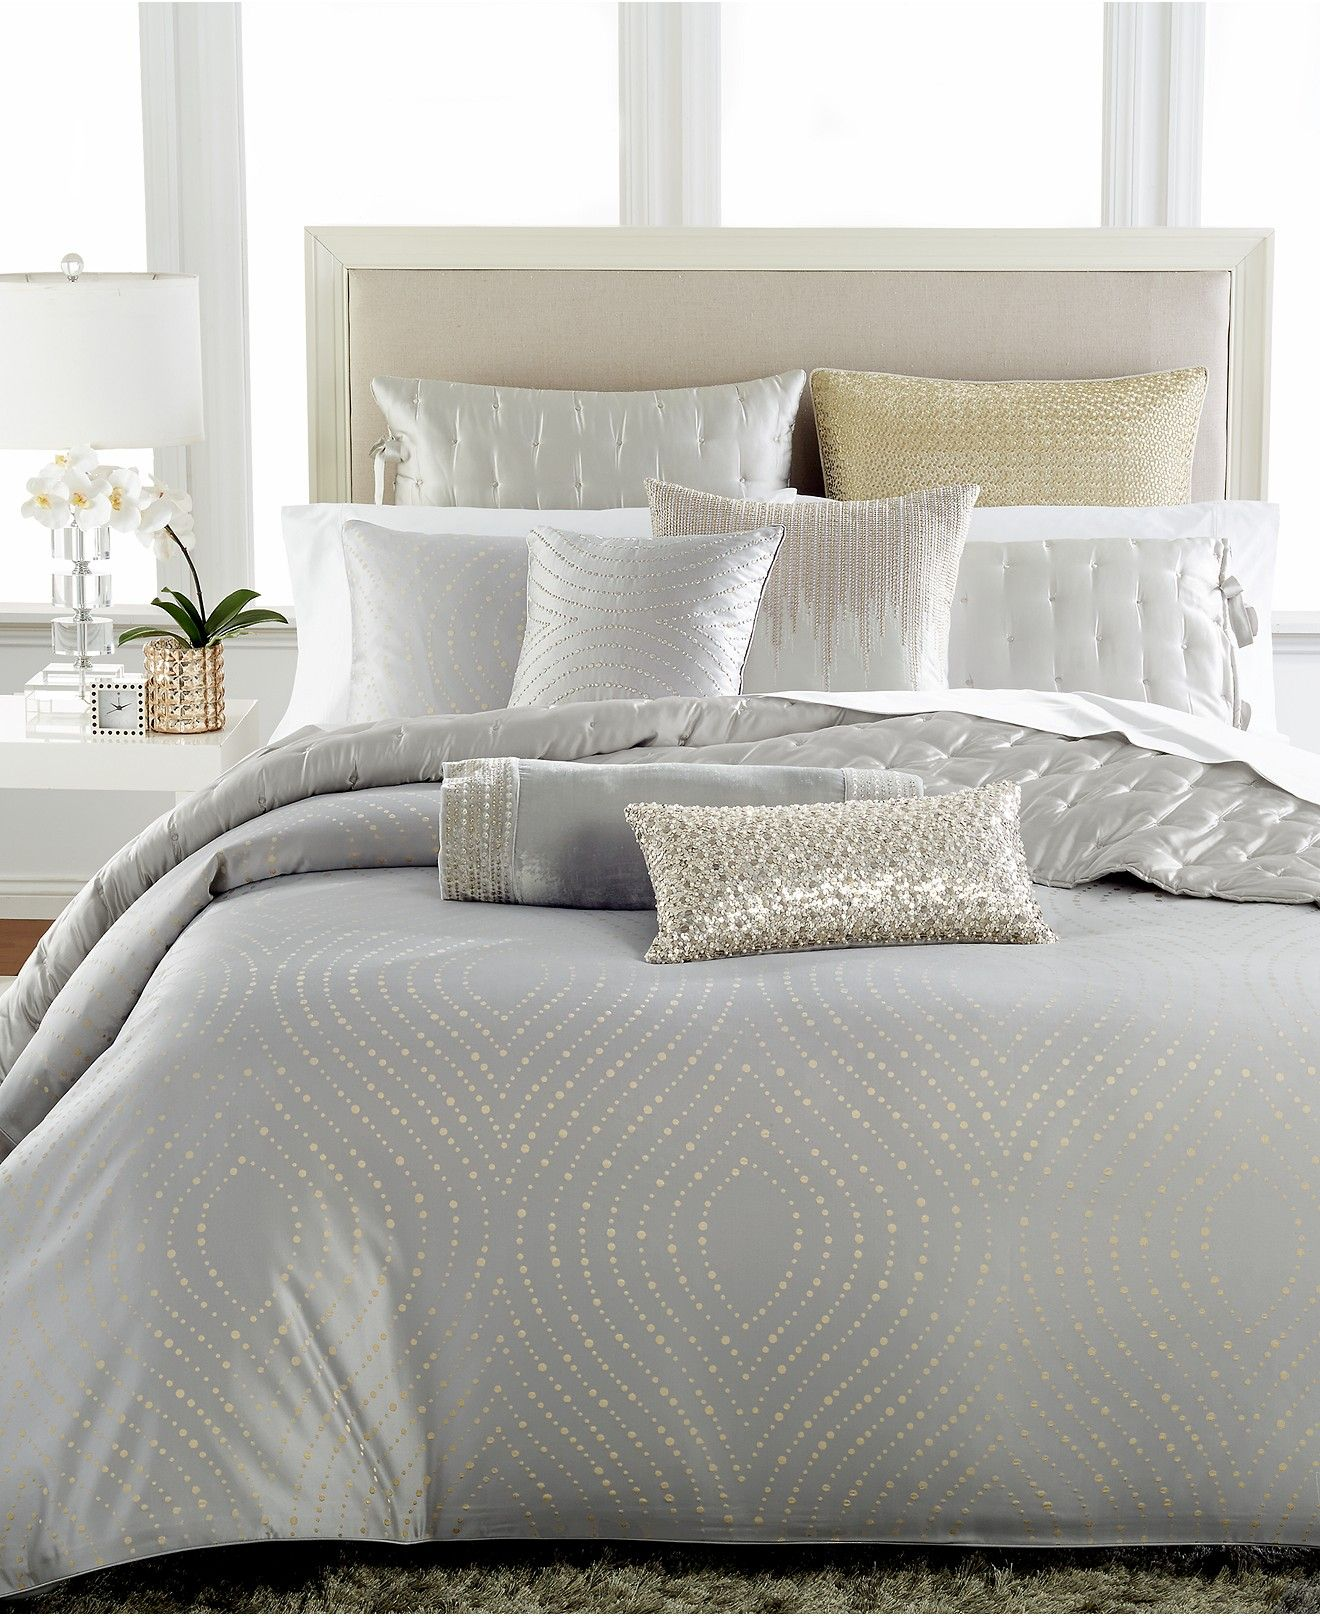 dedbc490d3472 Hotel Collection Finest Silver Leaf Bedding Collection - Bedding Collections  - Bed   Bath - Macy s